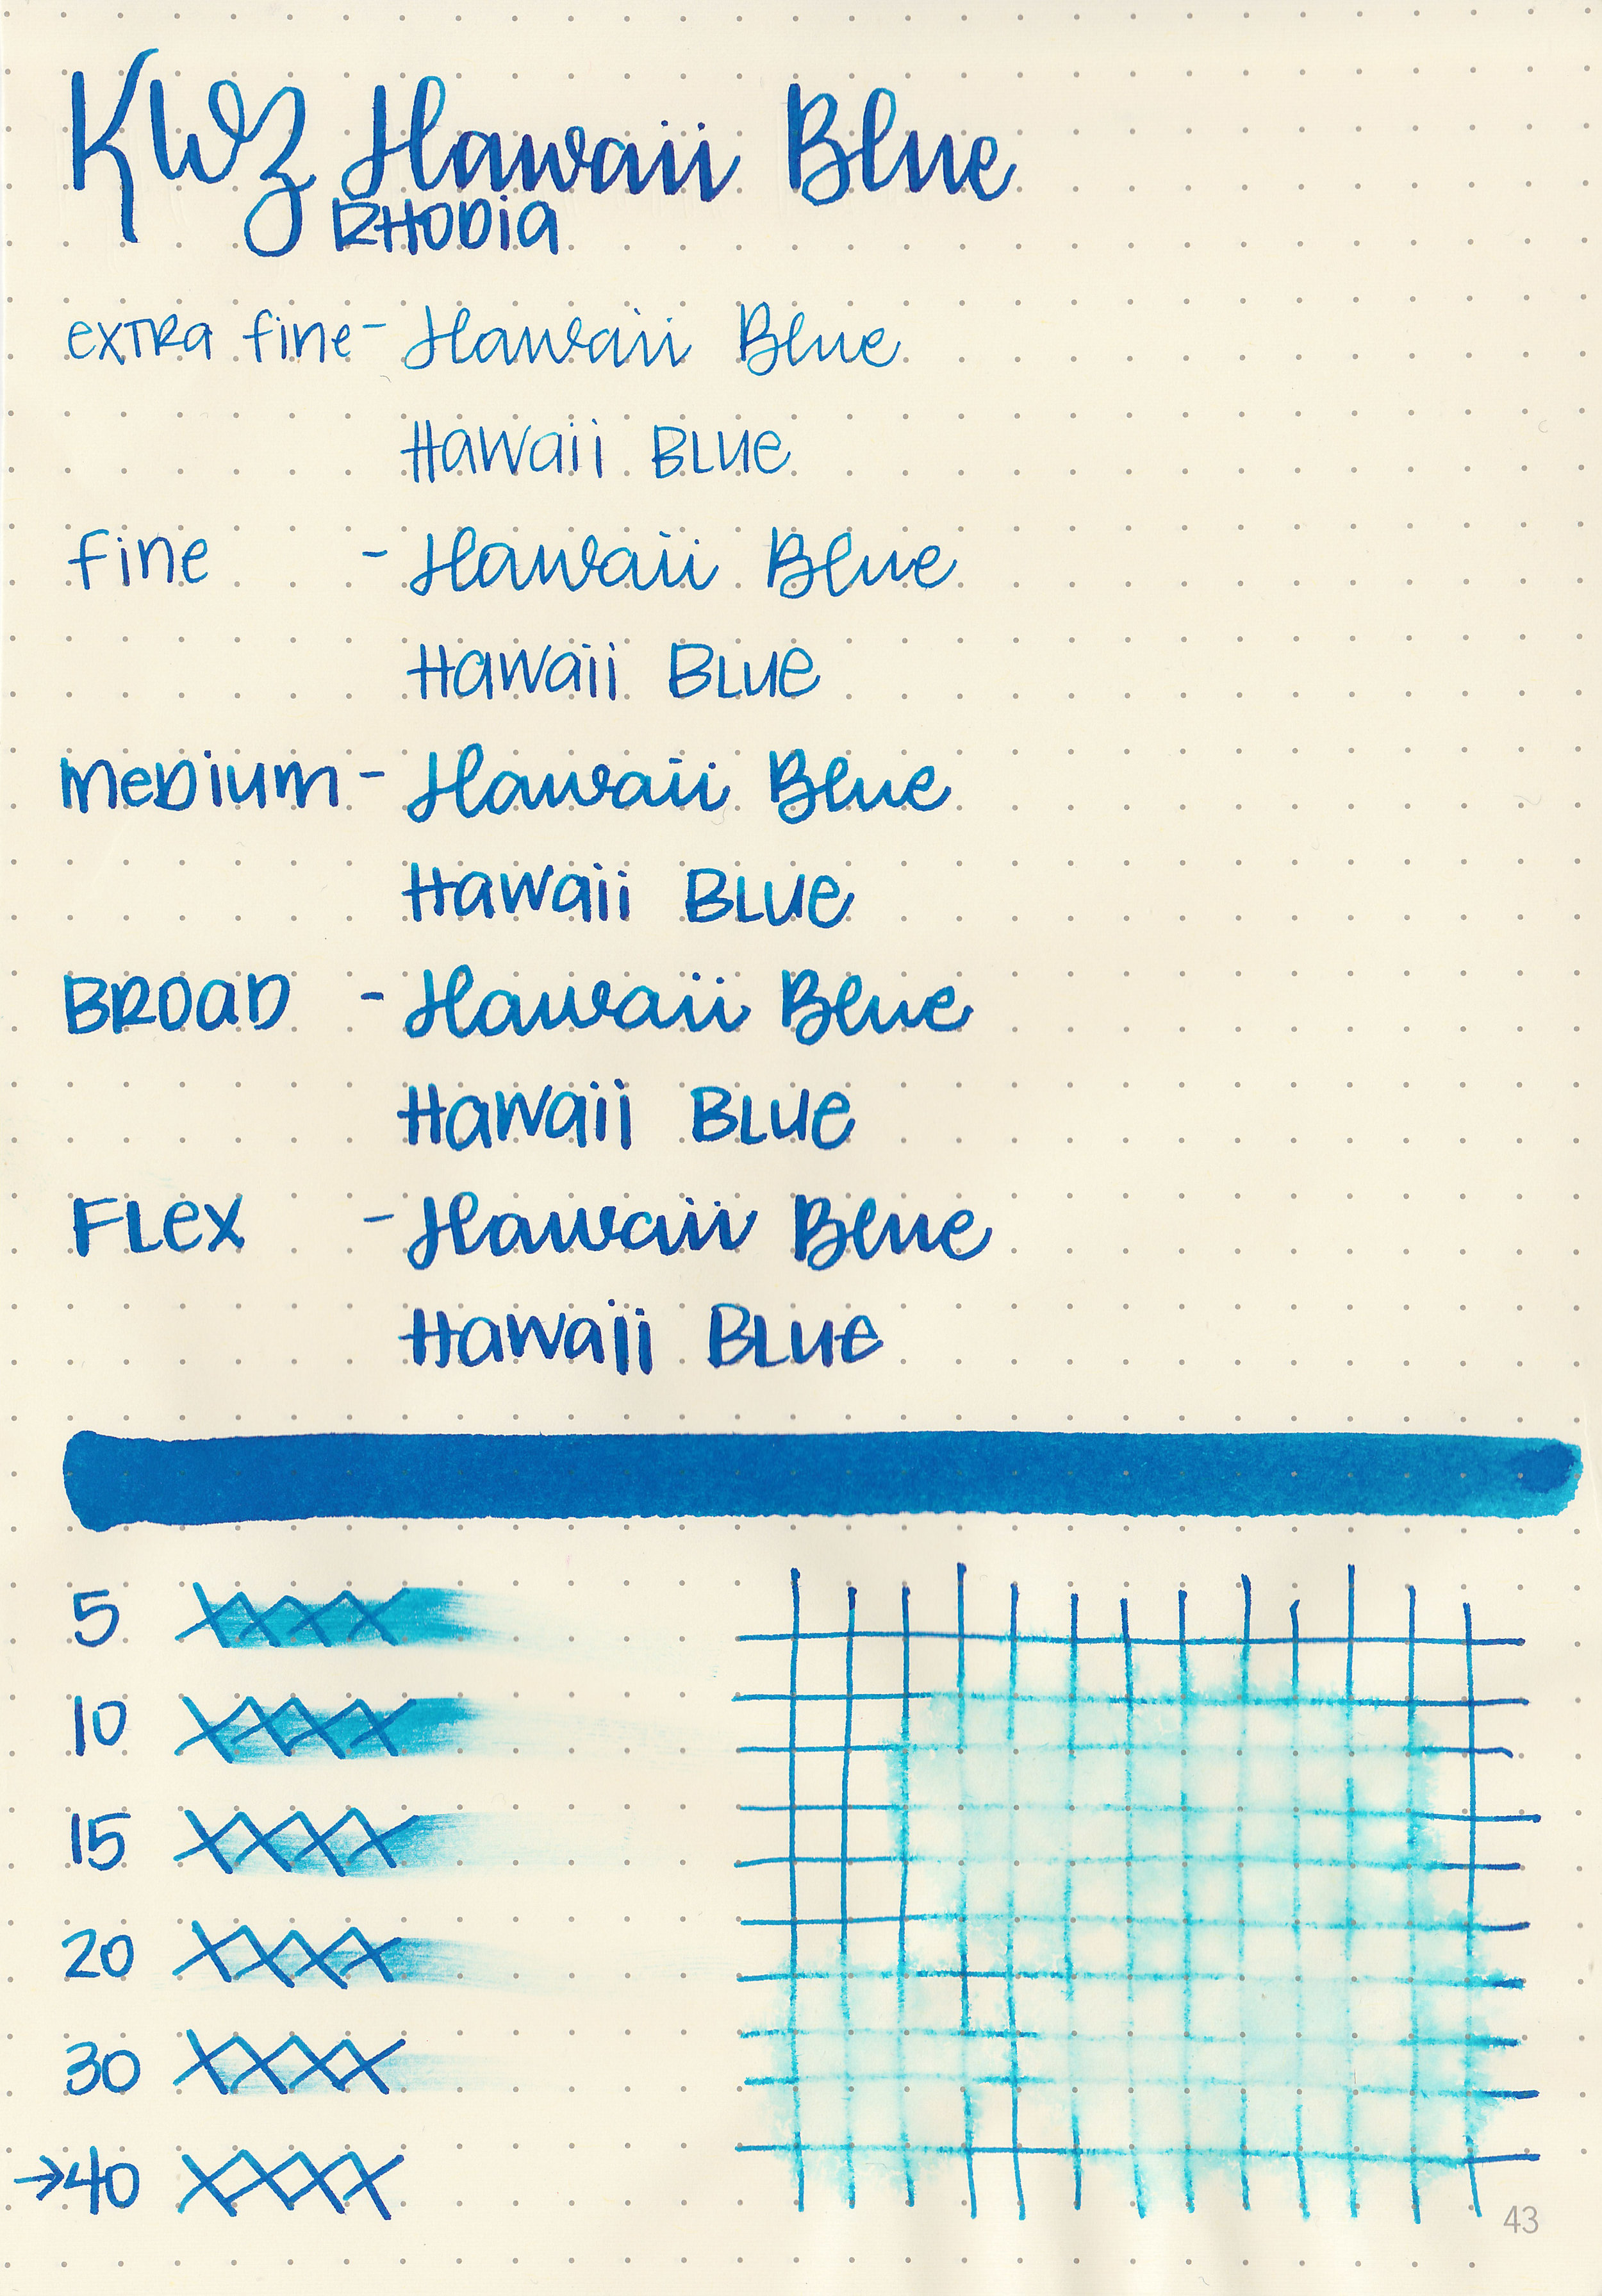 kwz-hawaii-blue-3.jpg